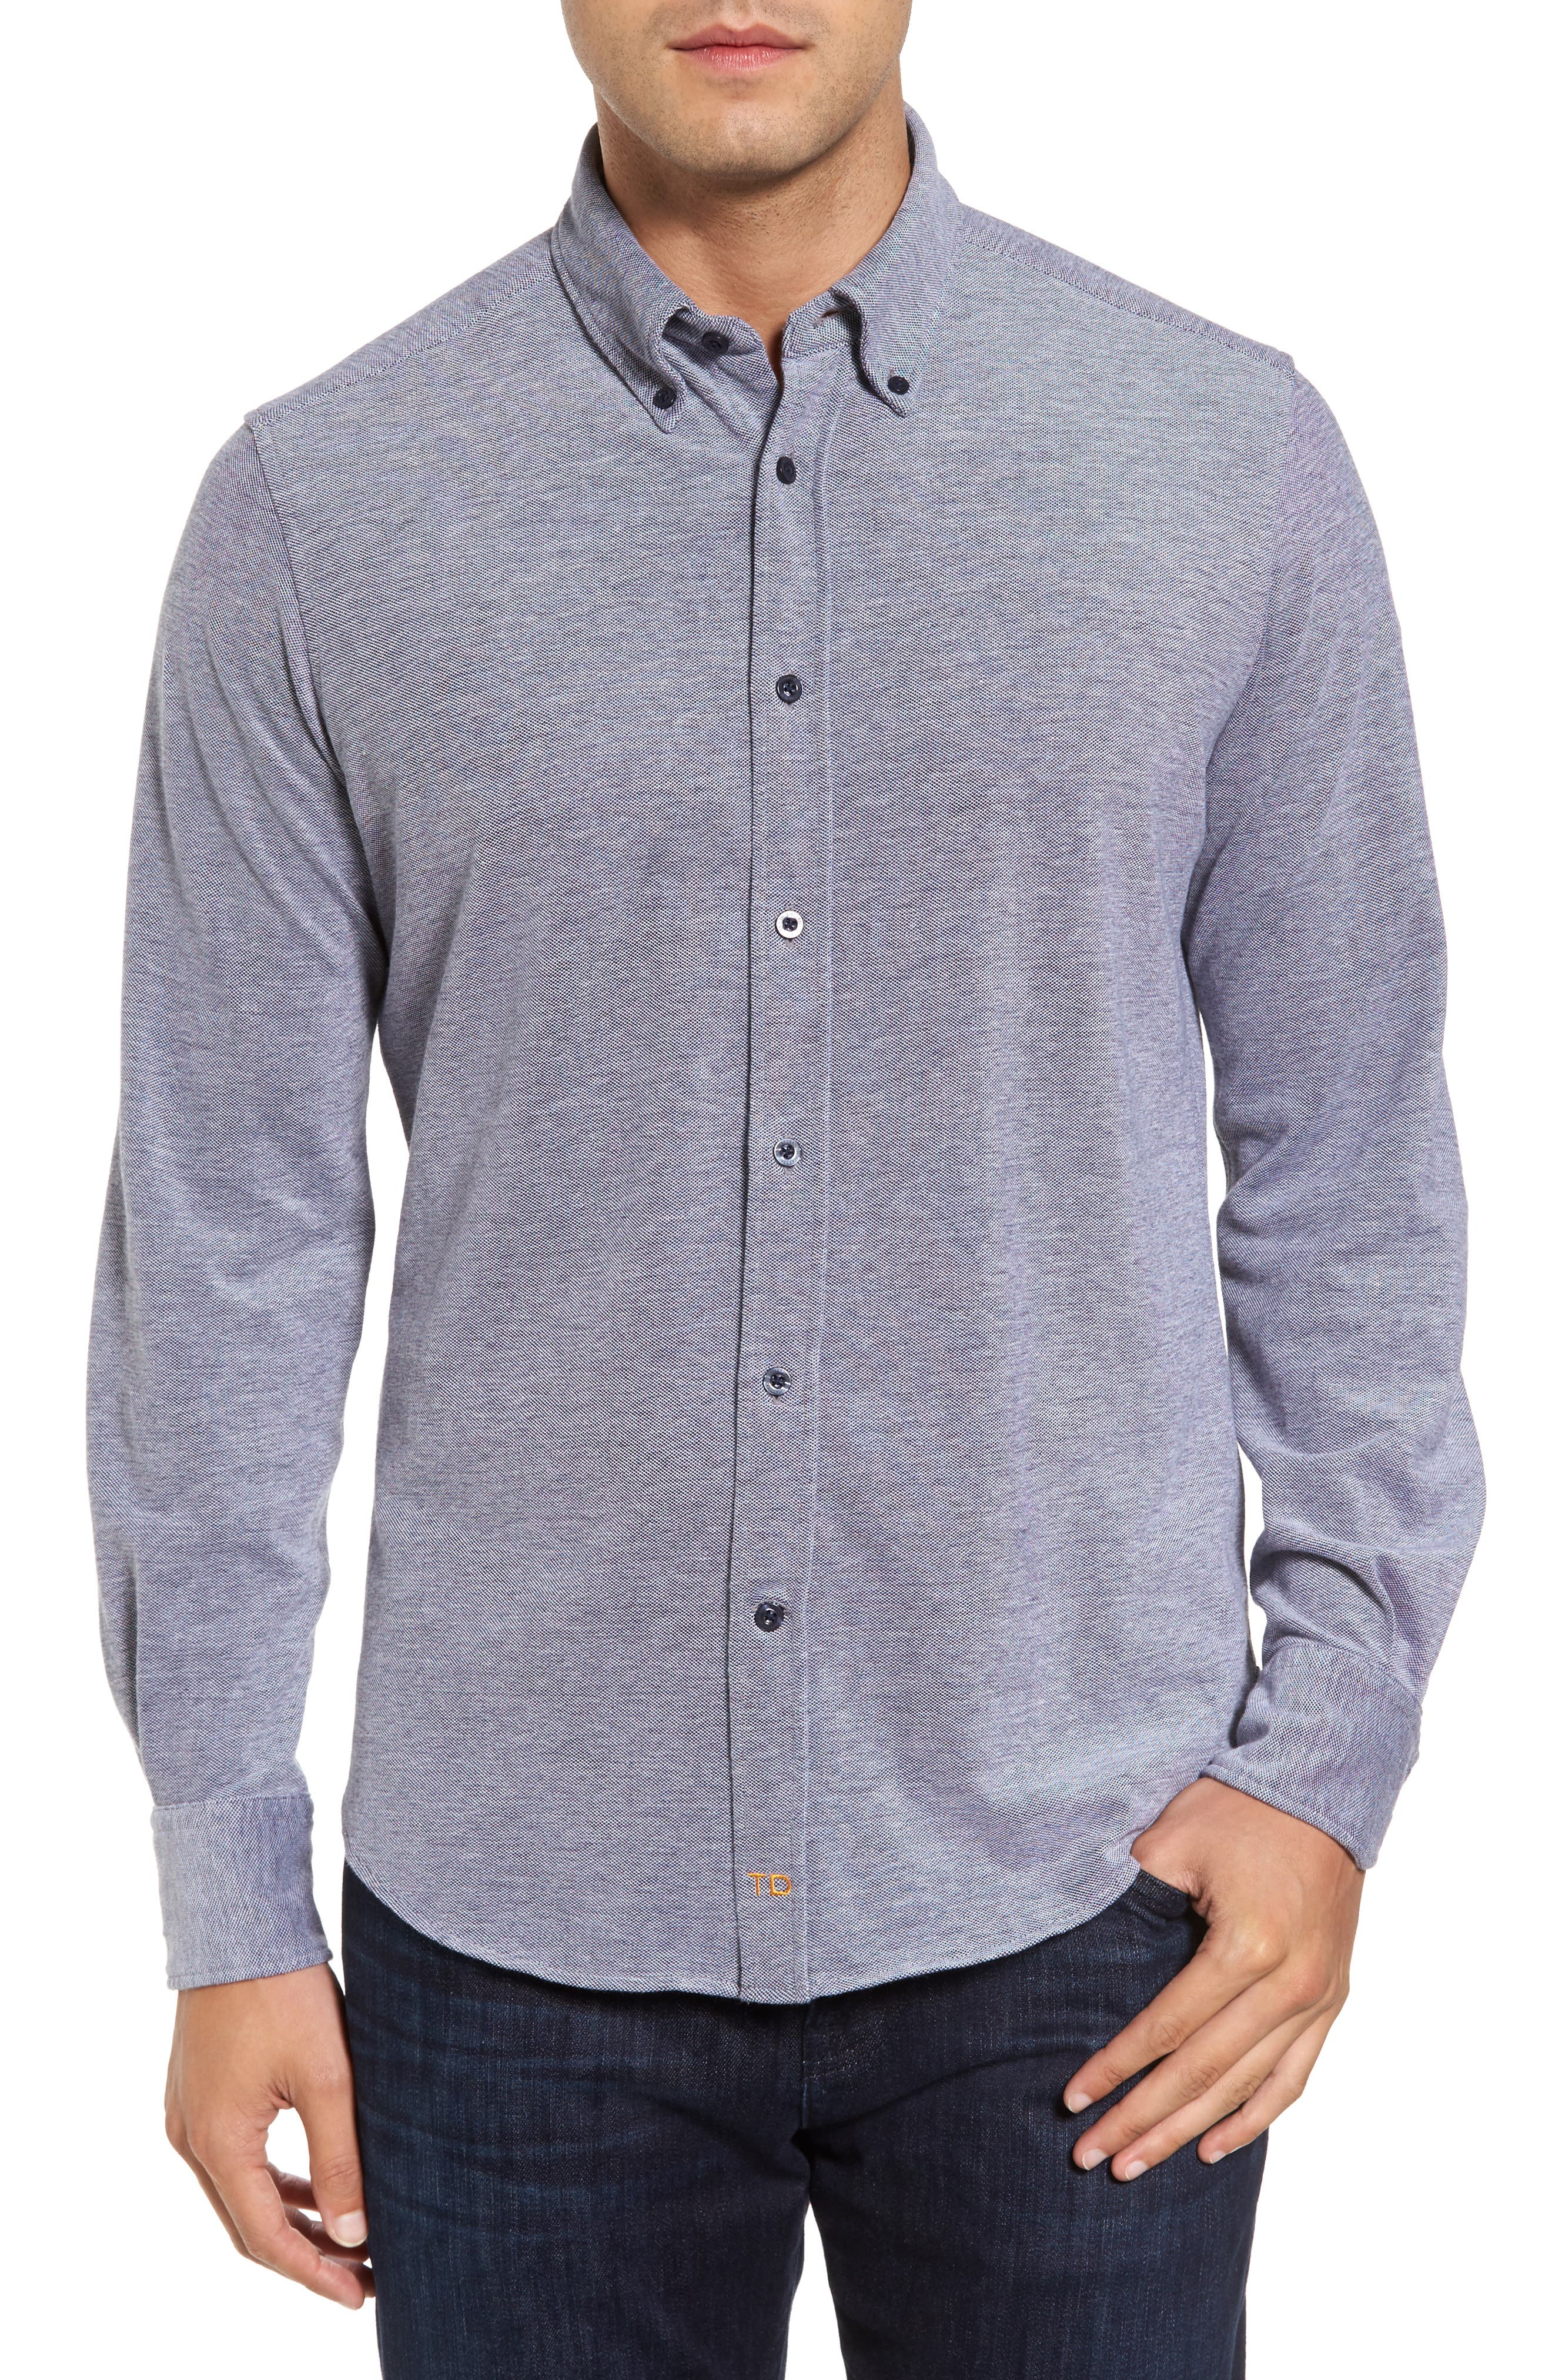 Alternate Image 1 Selected - Thomas Dean Regular Fit Oxford Piqué Sport Shirt